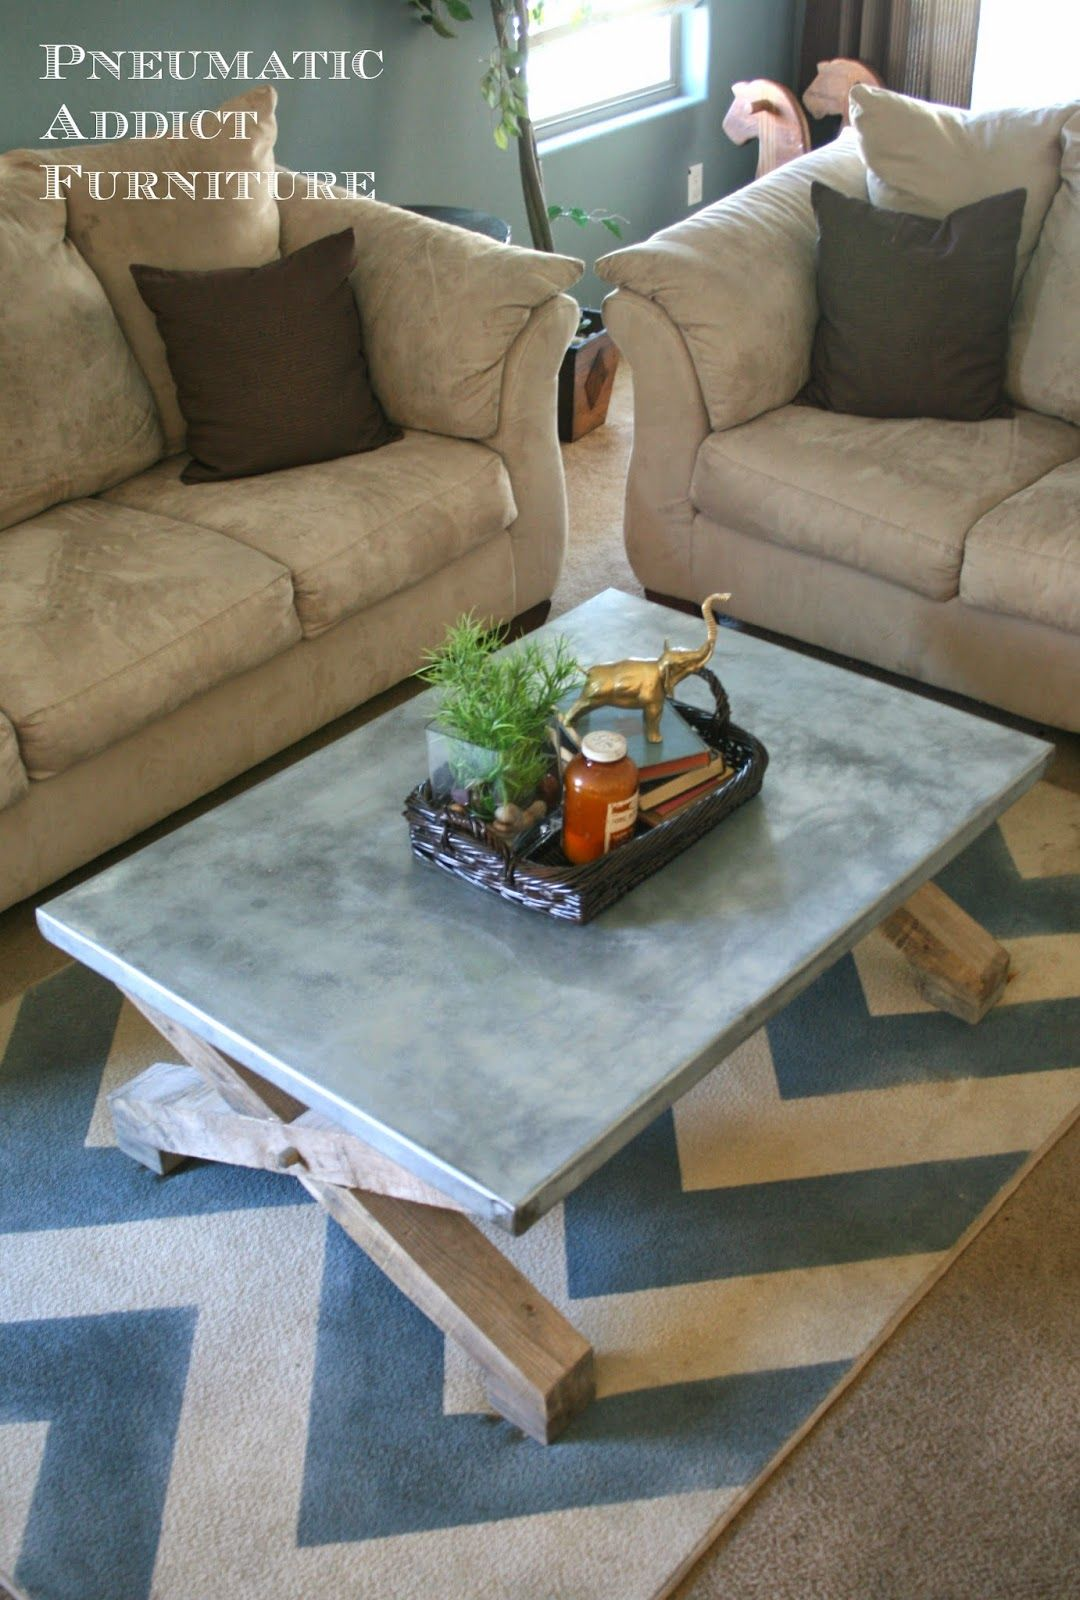 Pneumatic Addict Furniture: Zinc Top Coffee Table Tutorial: Pottery Barn  Knock Off   Smith Metal Wrapped Table!